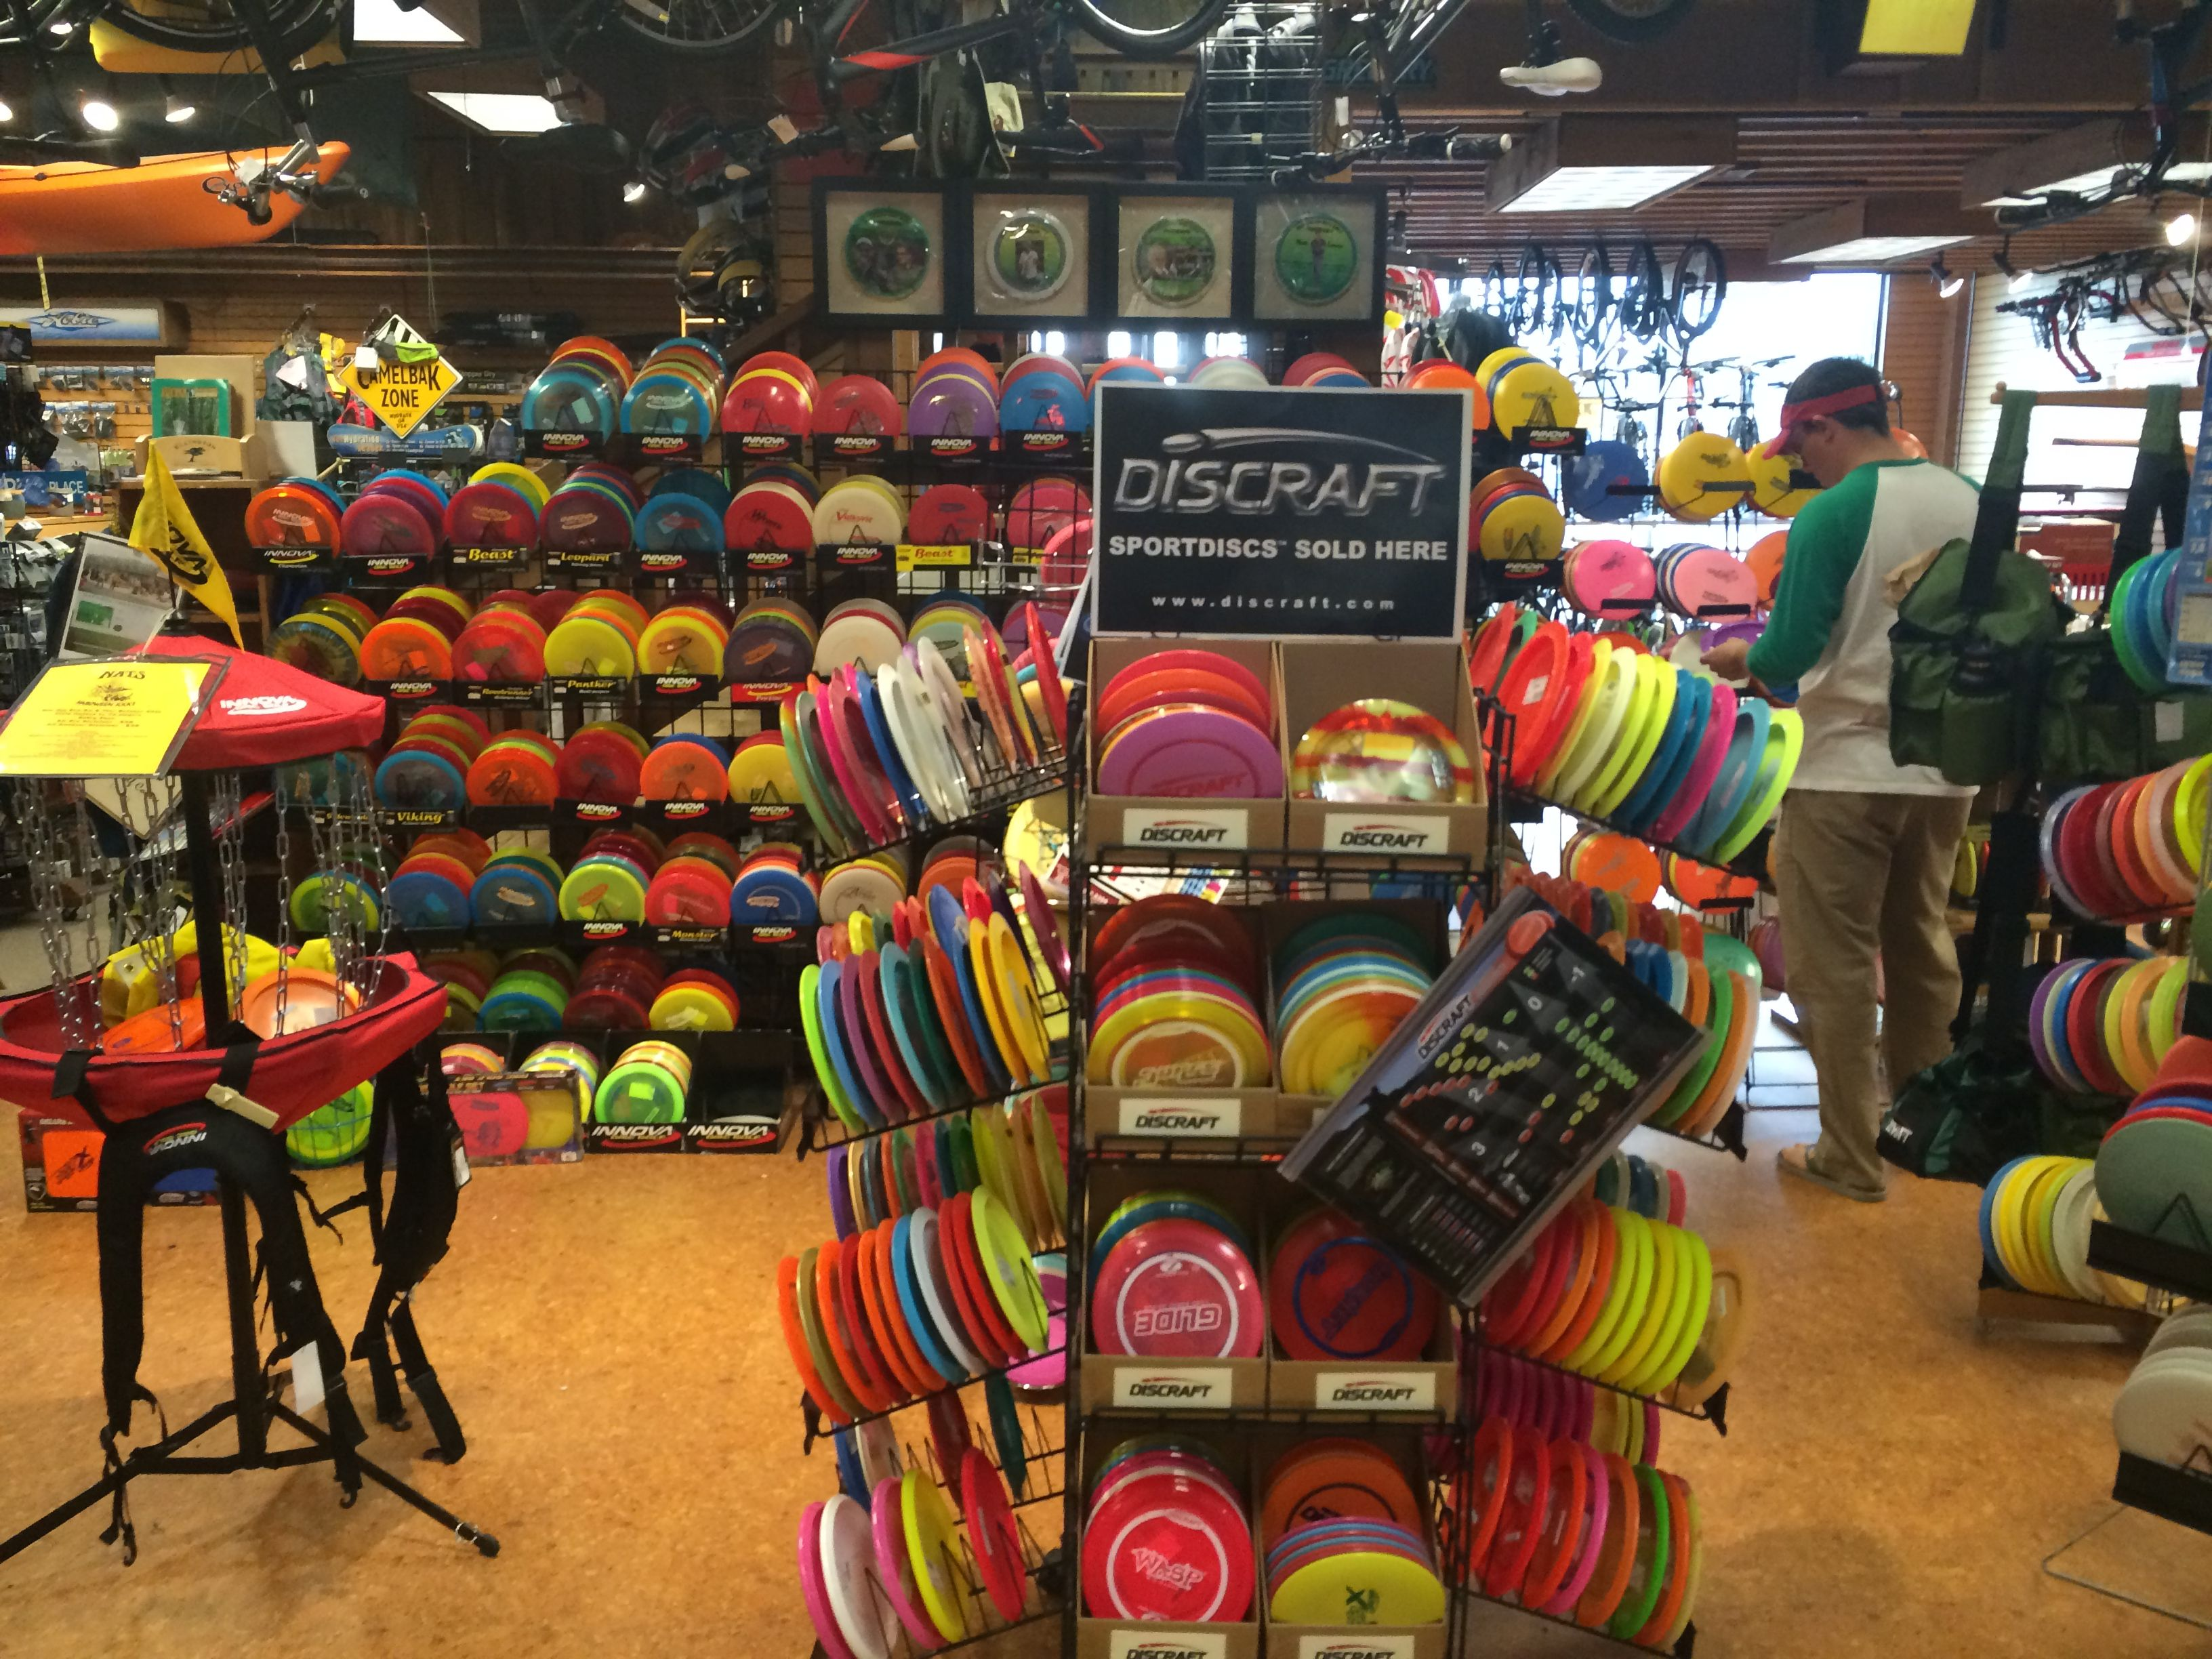 Another shot of the selection of disc golf goo s at Nats Outdoors